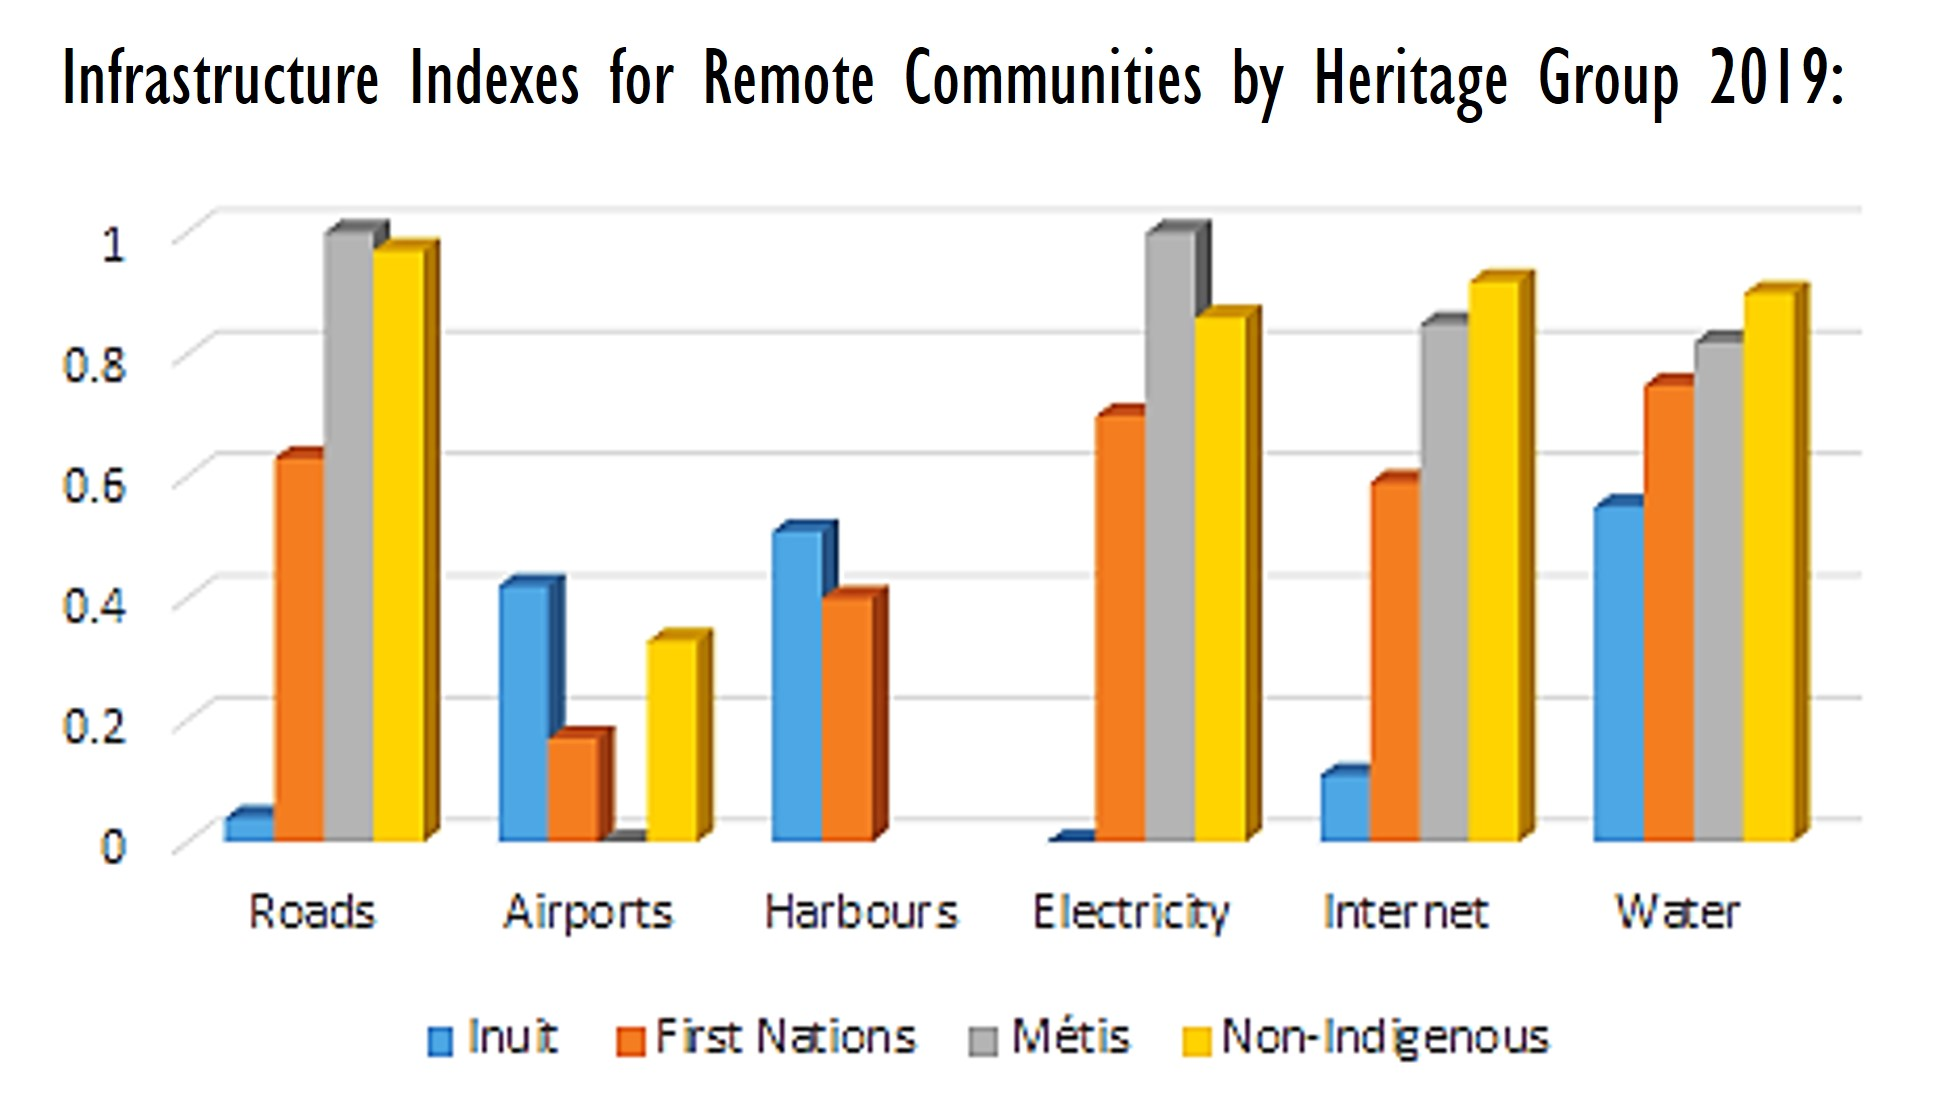 Infrastructure Indexes for Remote Communities by Heritage Group 2019